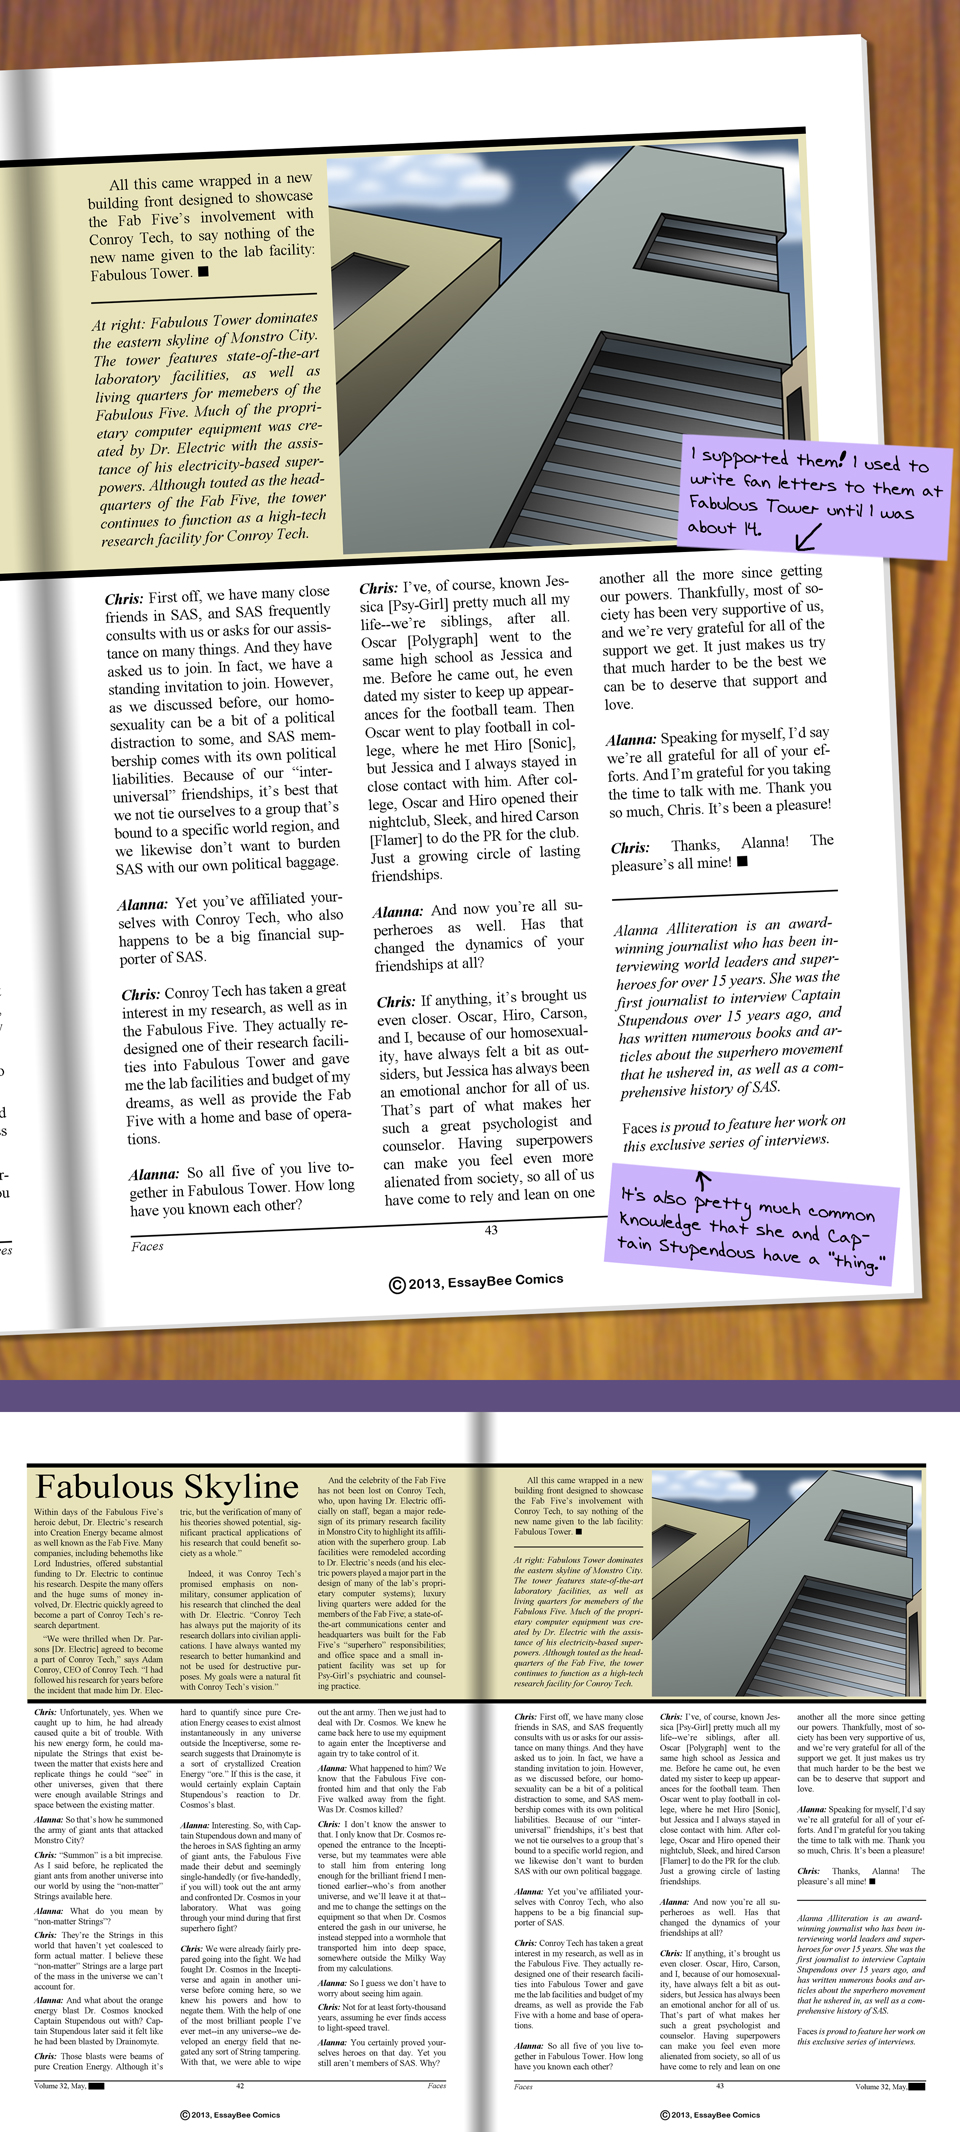 Interleude--Faces Magazine Interview Page 06 (and 2-page layout)